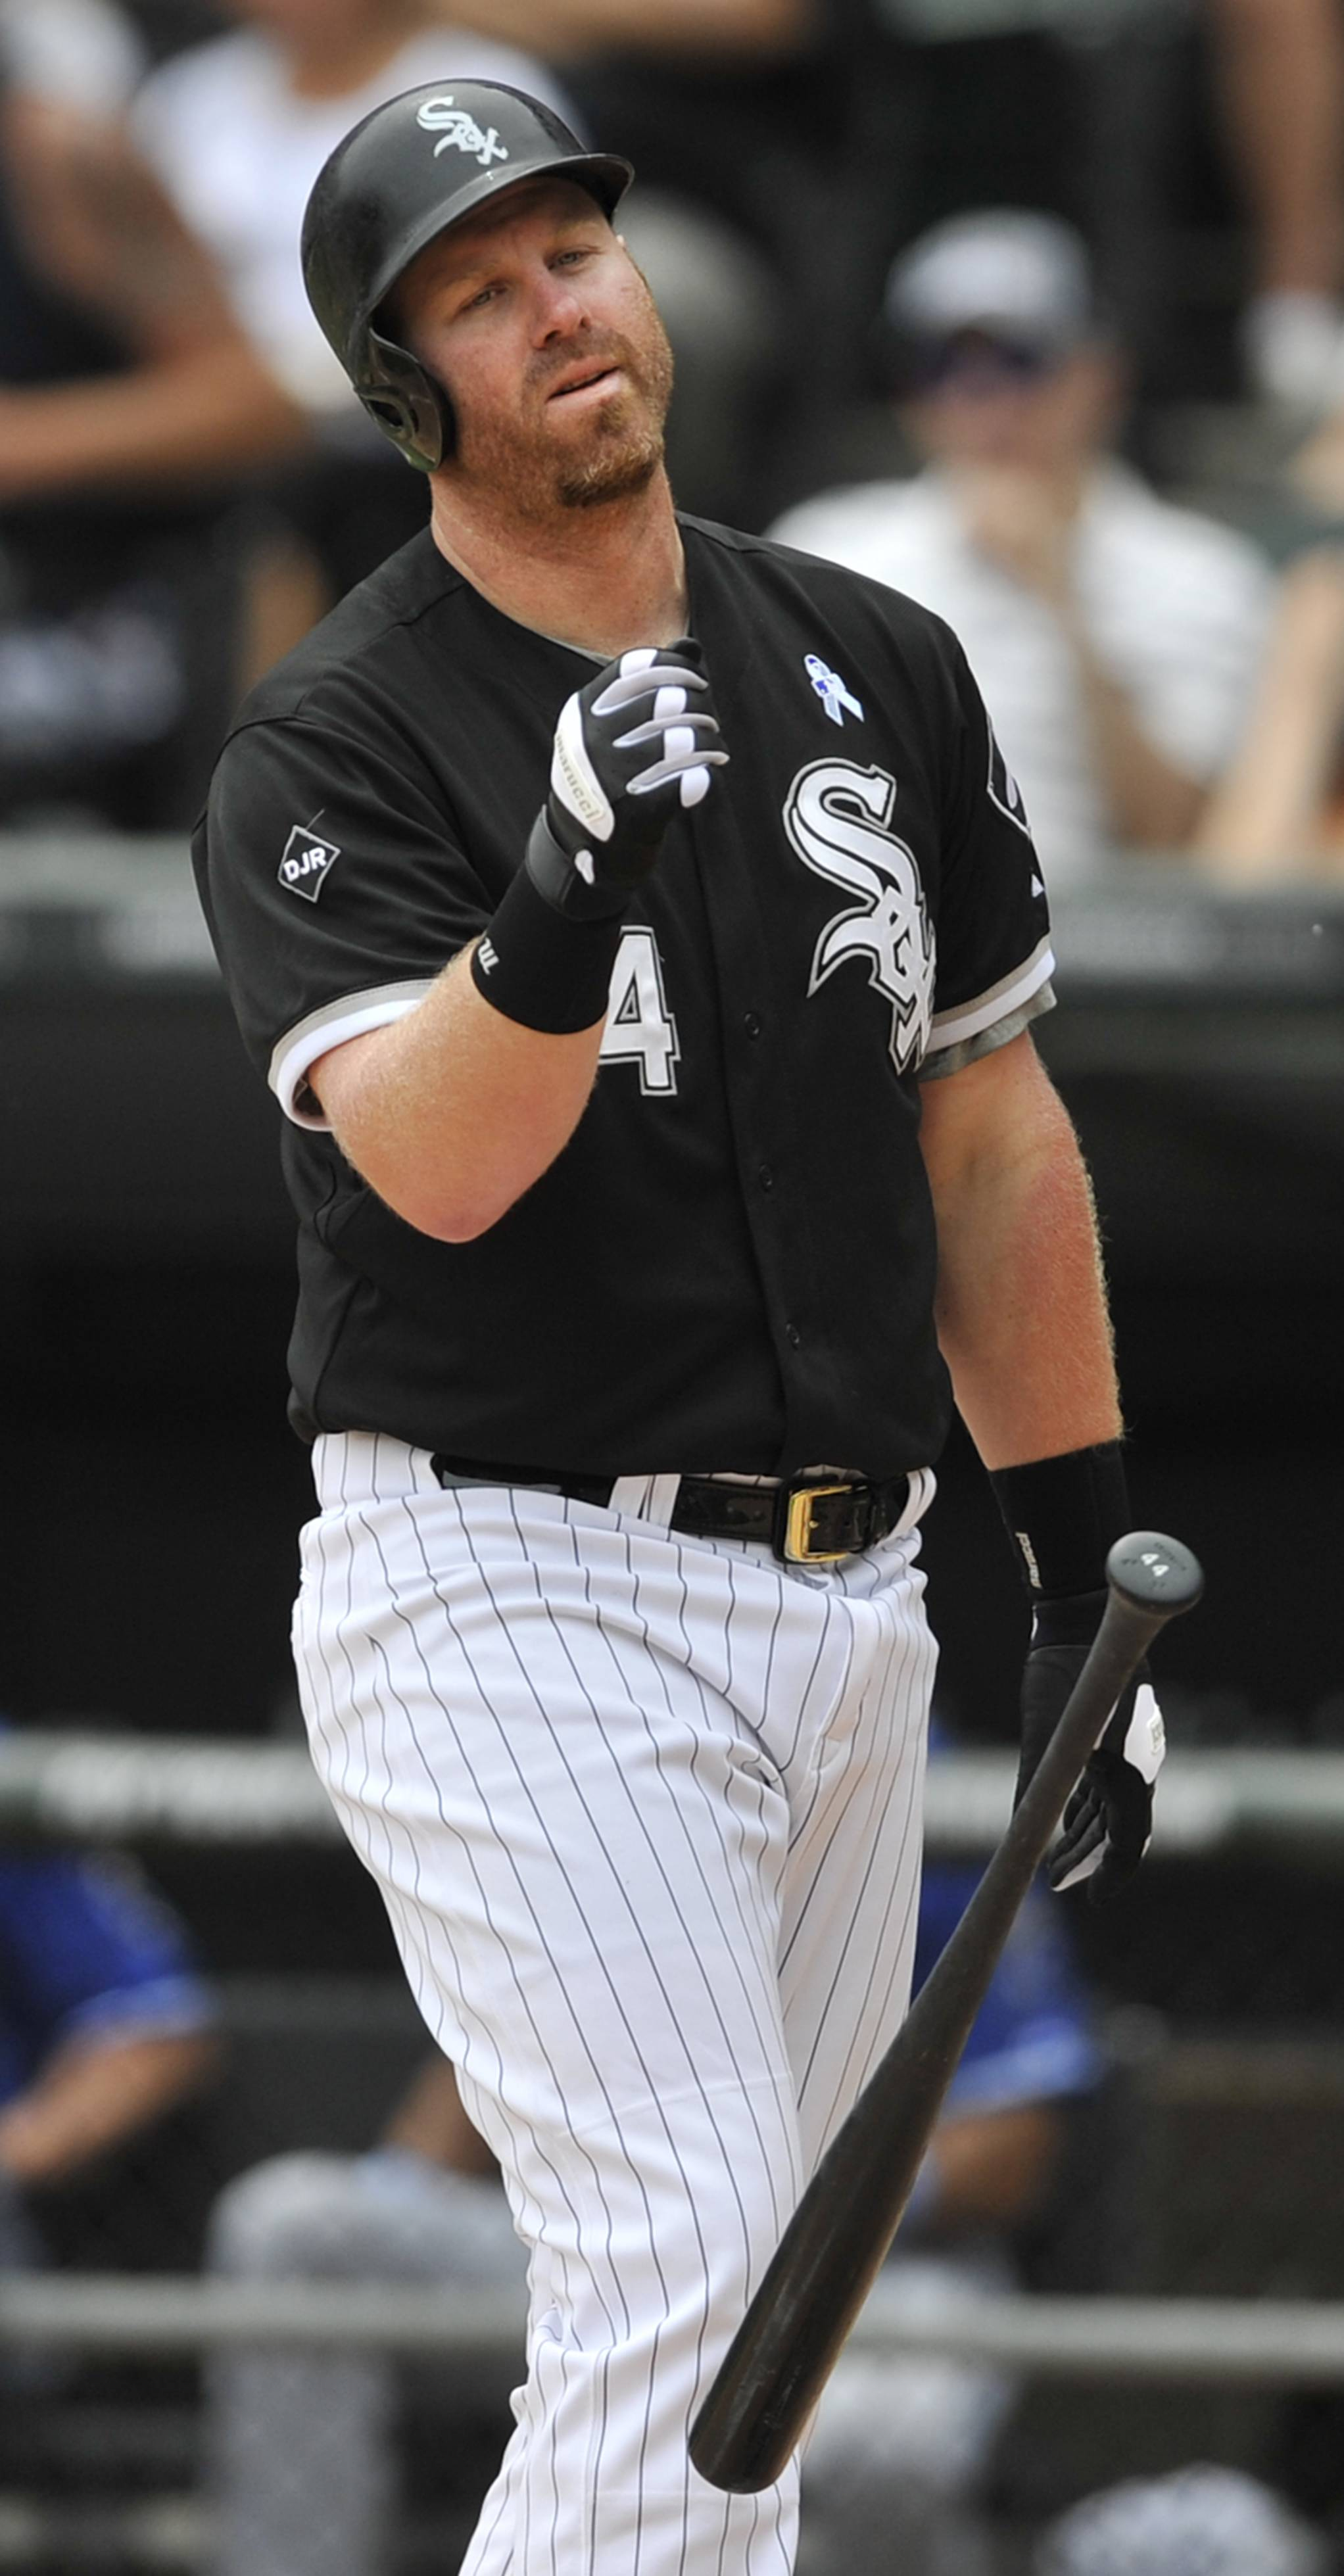 The White Sox's Adam Dunn was 1-for-9 with 5 strikeouts in the three-game series sweep by the Royals this weekend at U.S. Cellular Field.